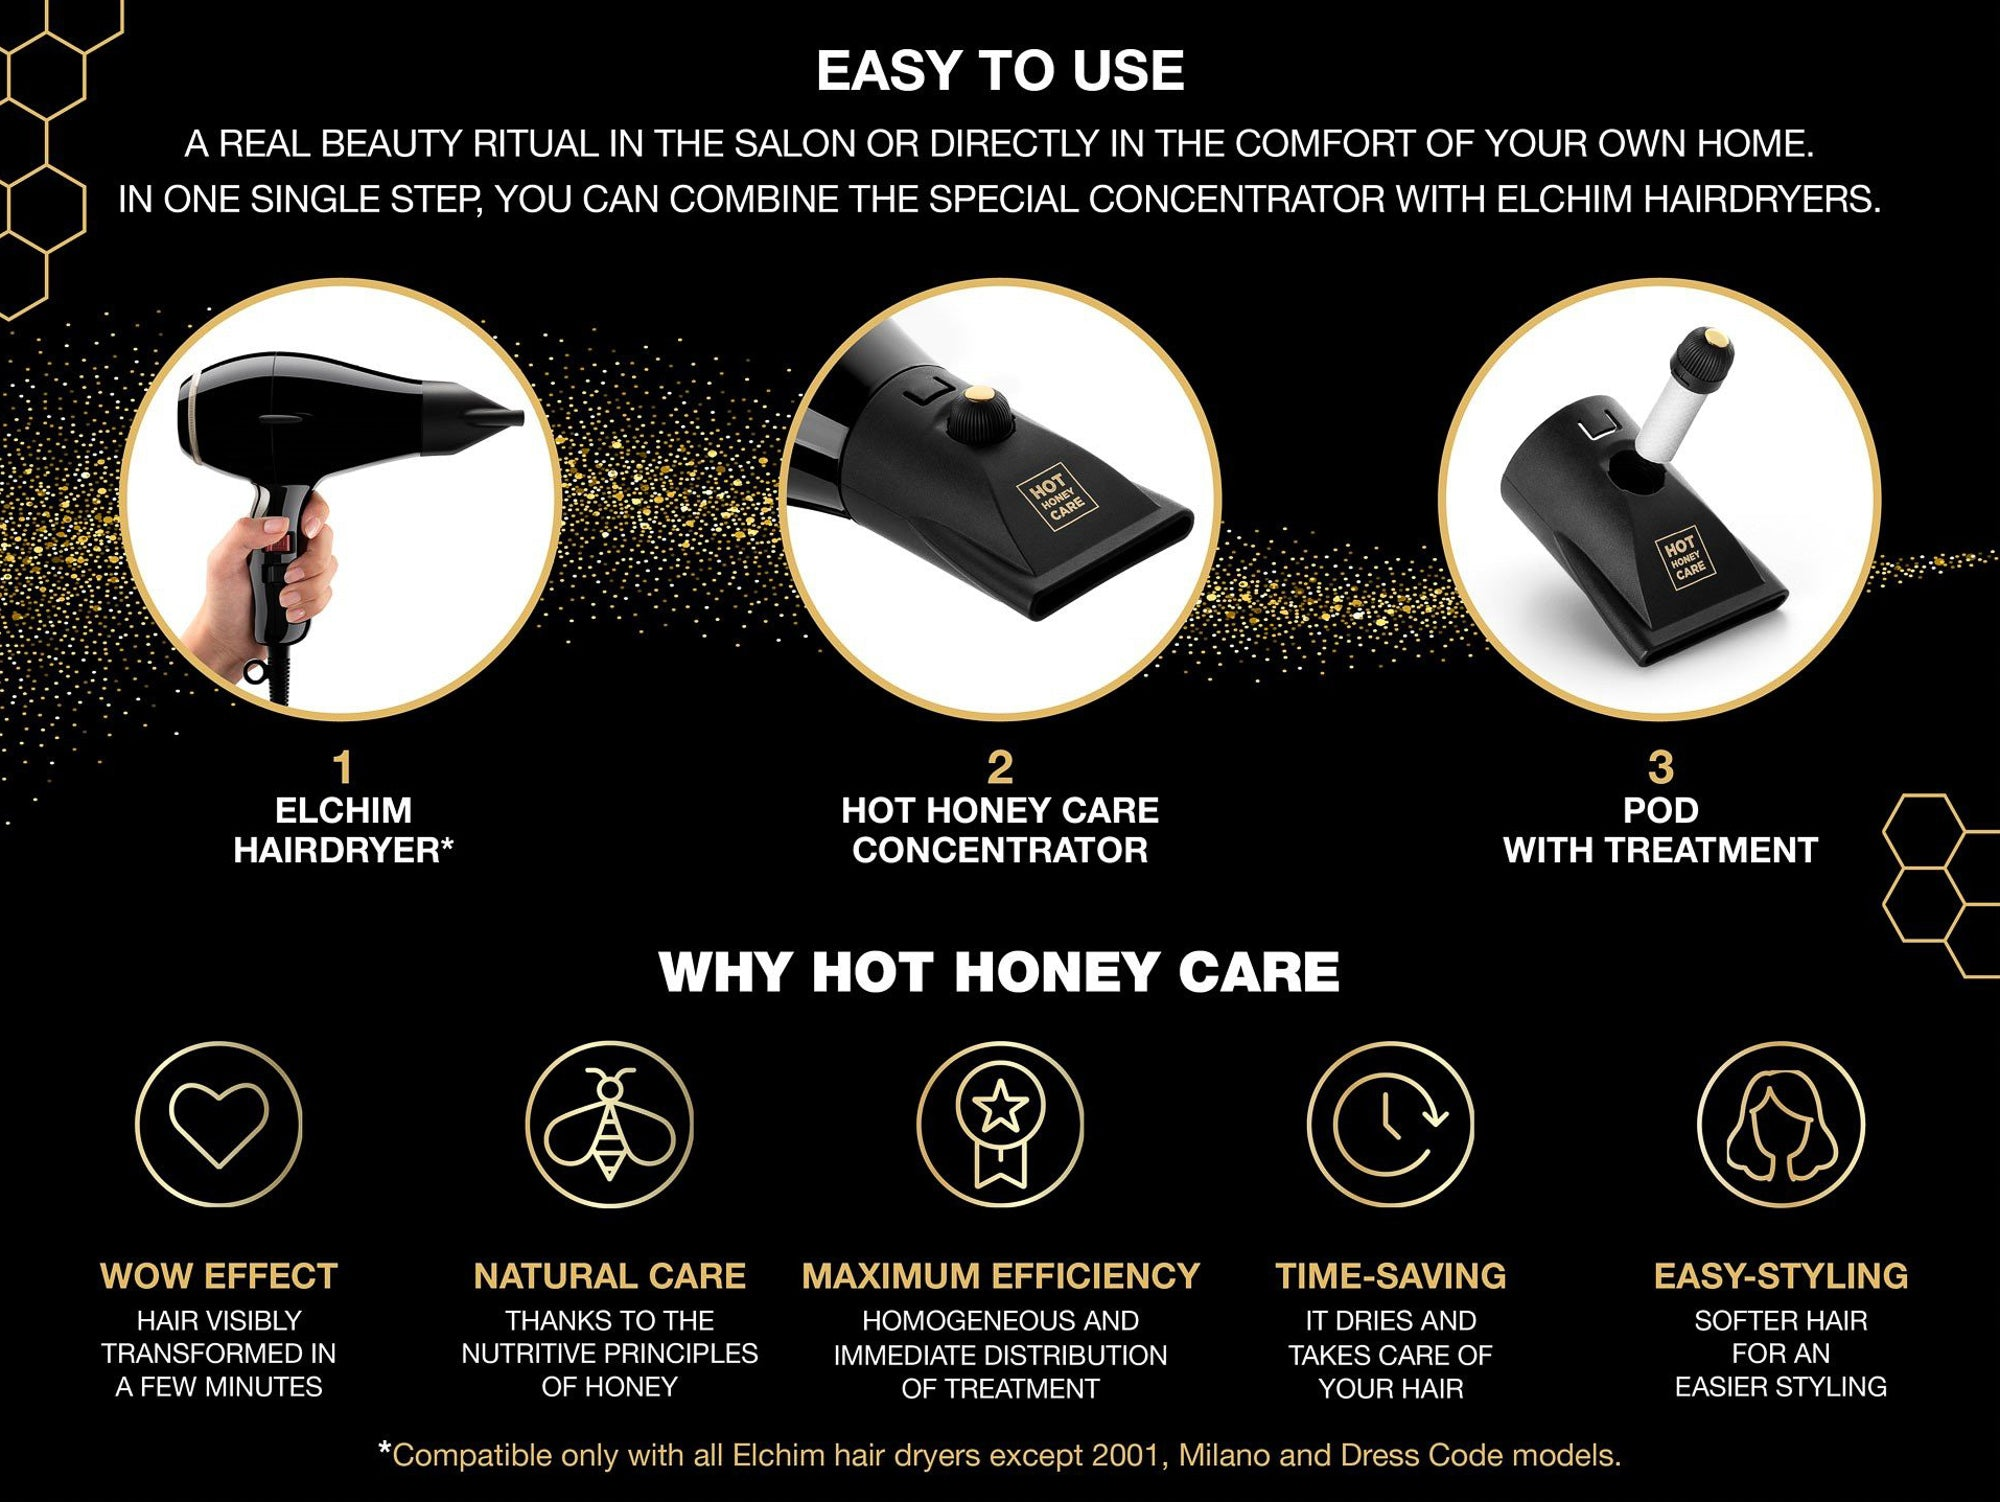 *NEW* 8th Sense RUN Blow Dryer (Lily Rose) + FREE Hot Honey Care Concentrator